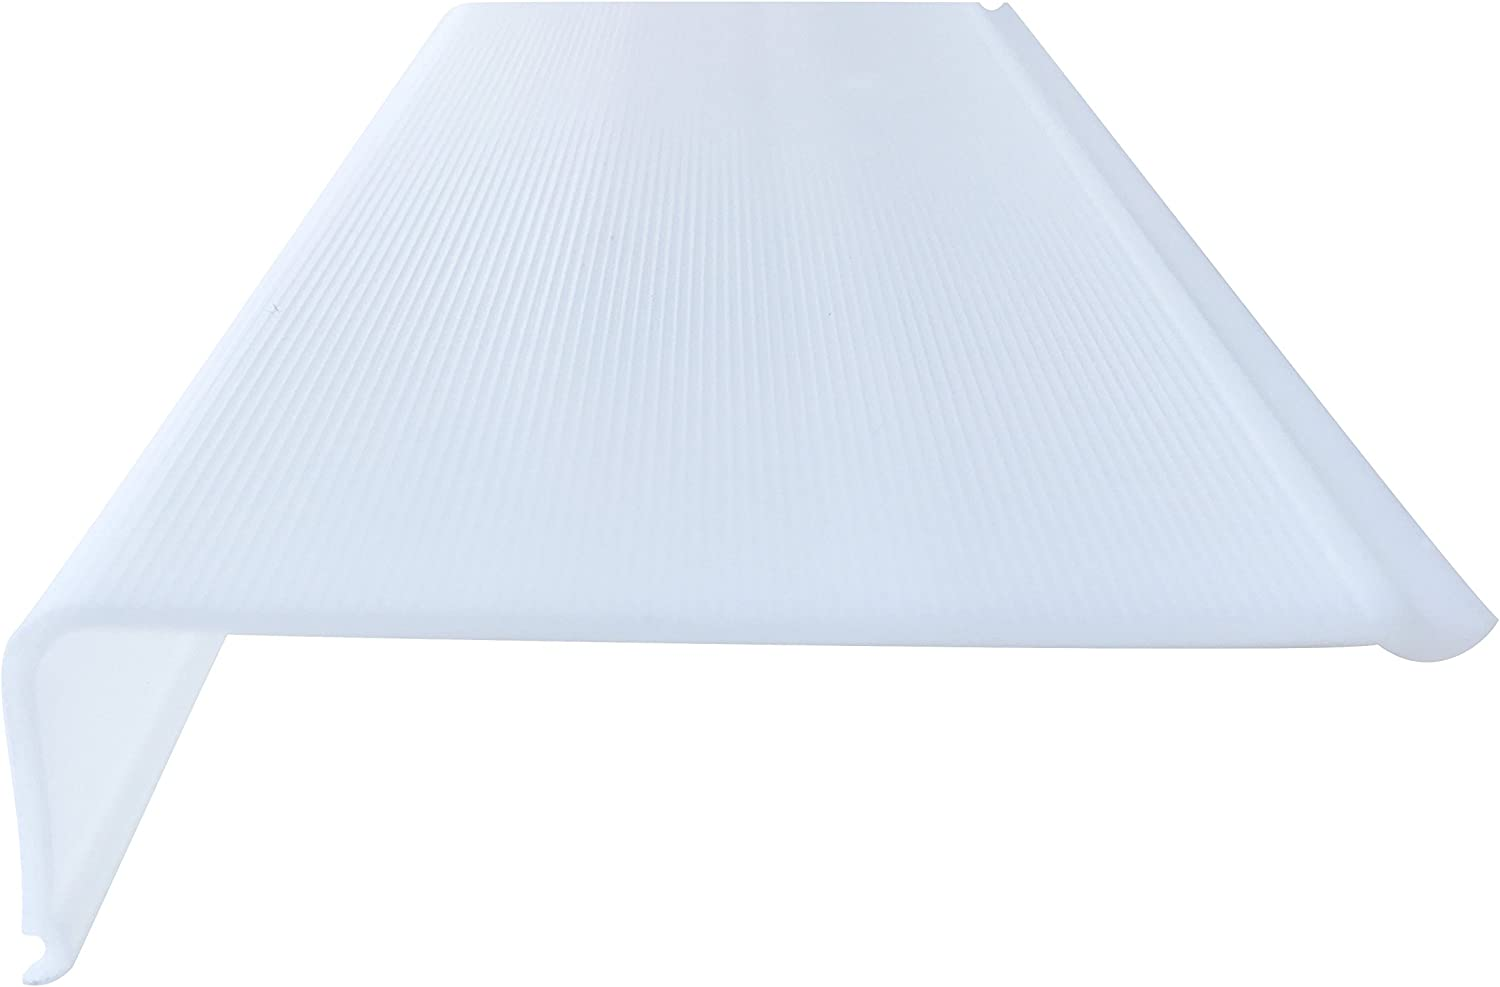 K-D Lamp 42224-031 Clear Polycarbonate Replacement Lens for 856 Series Lights